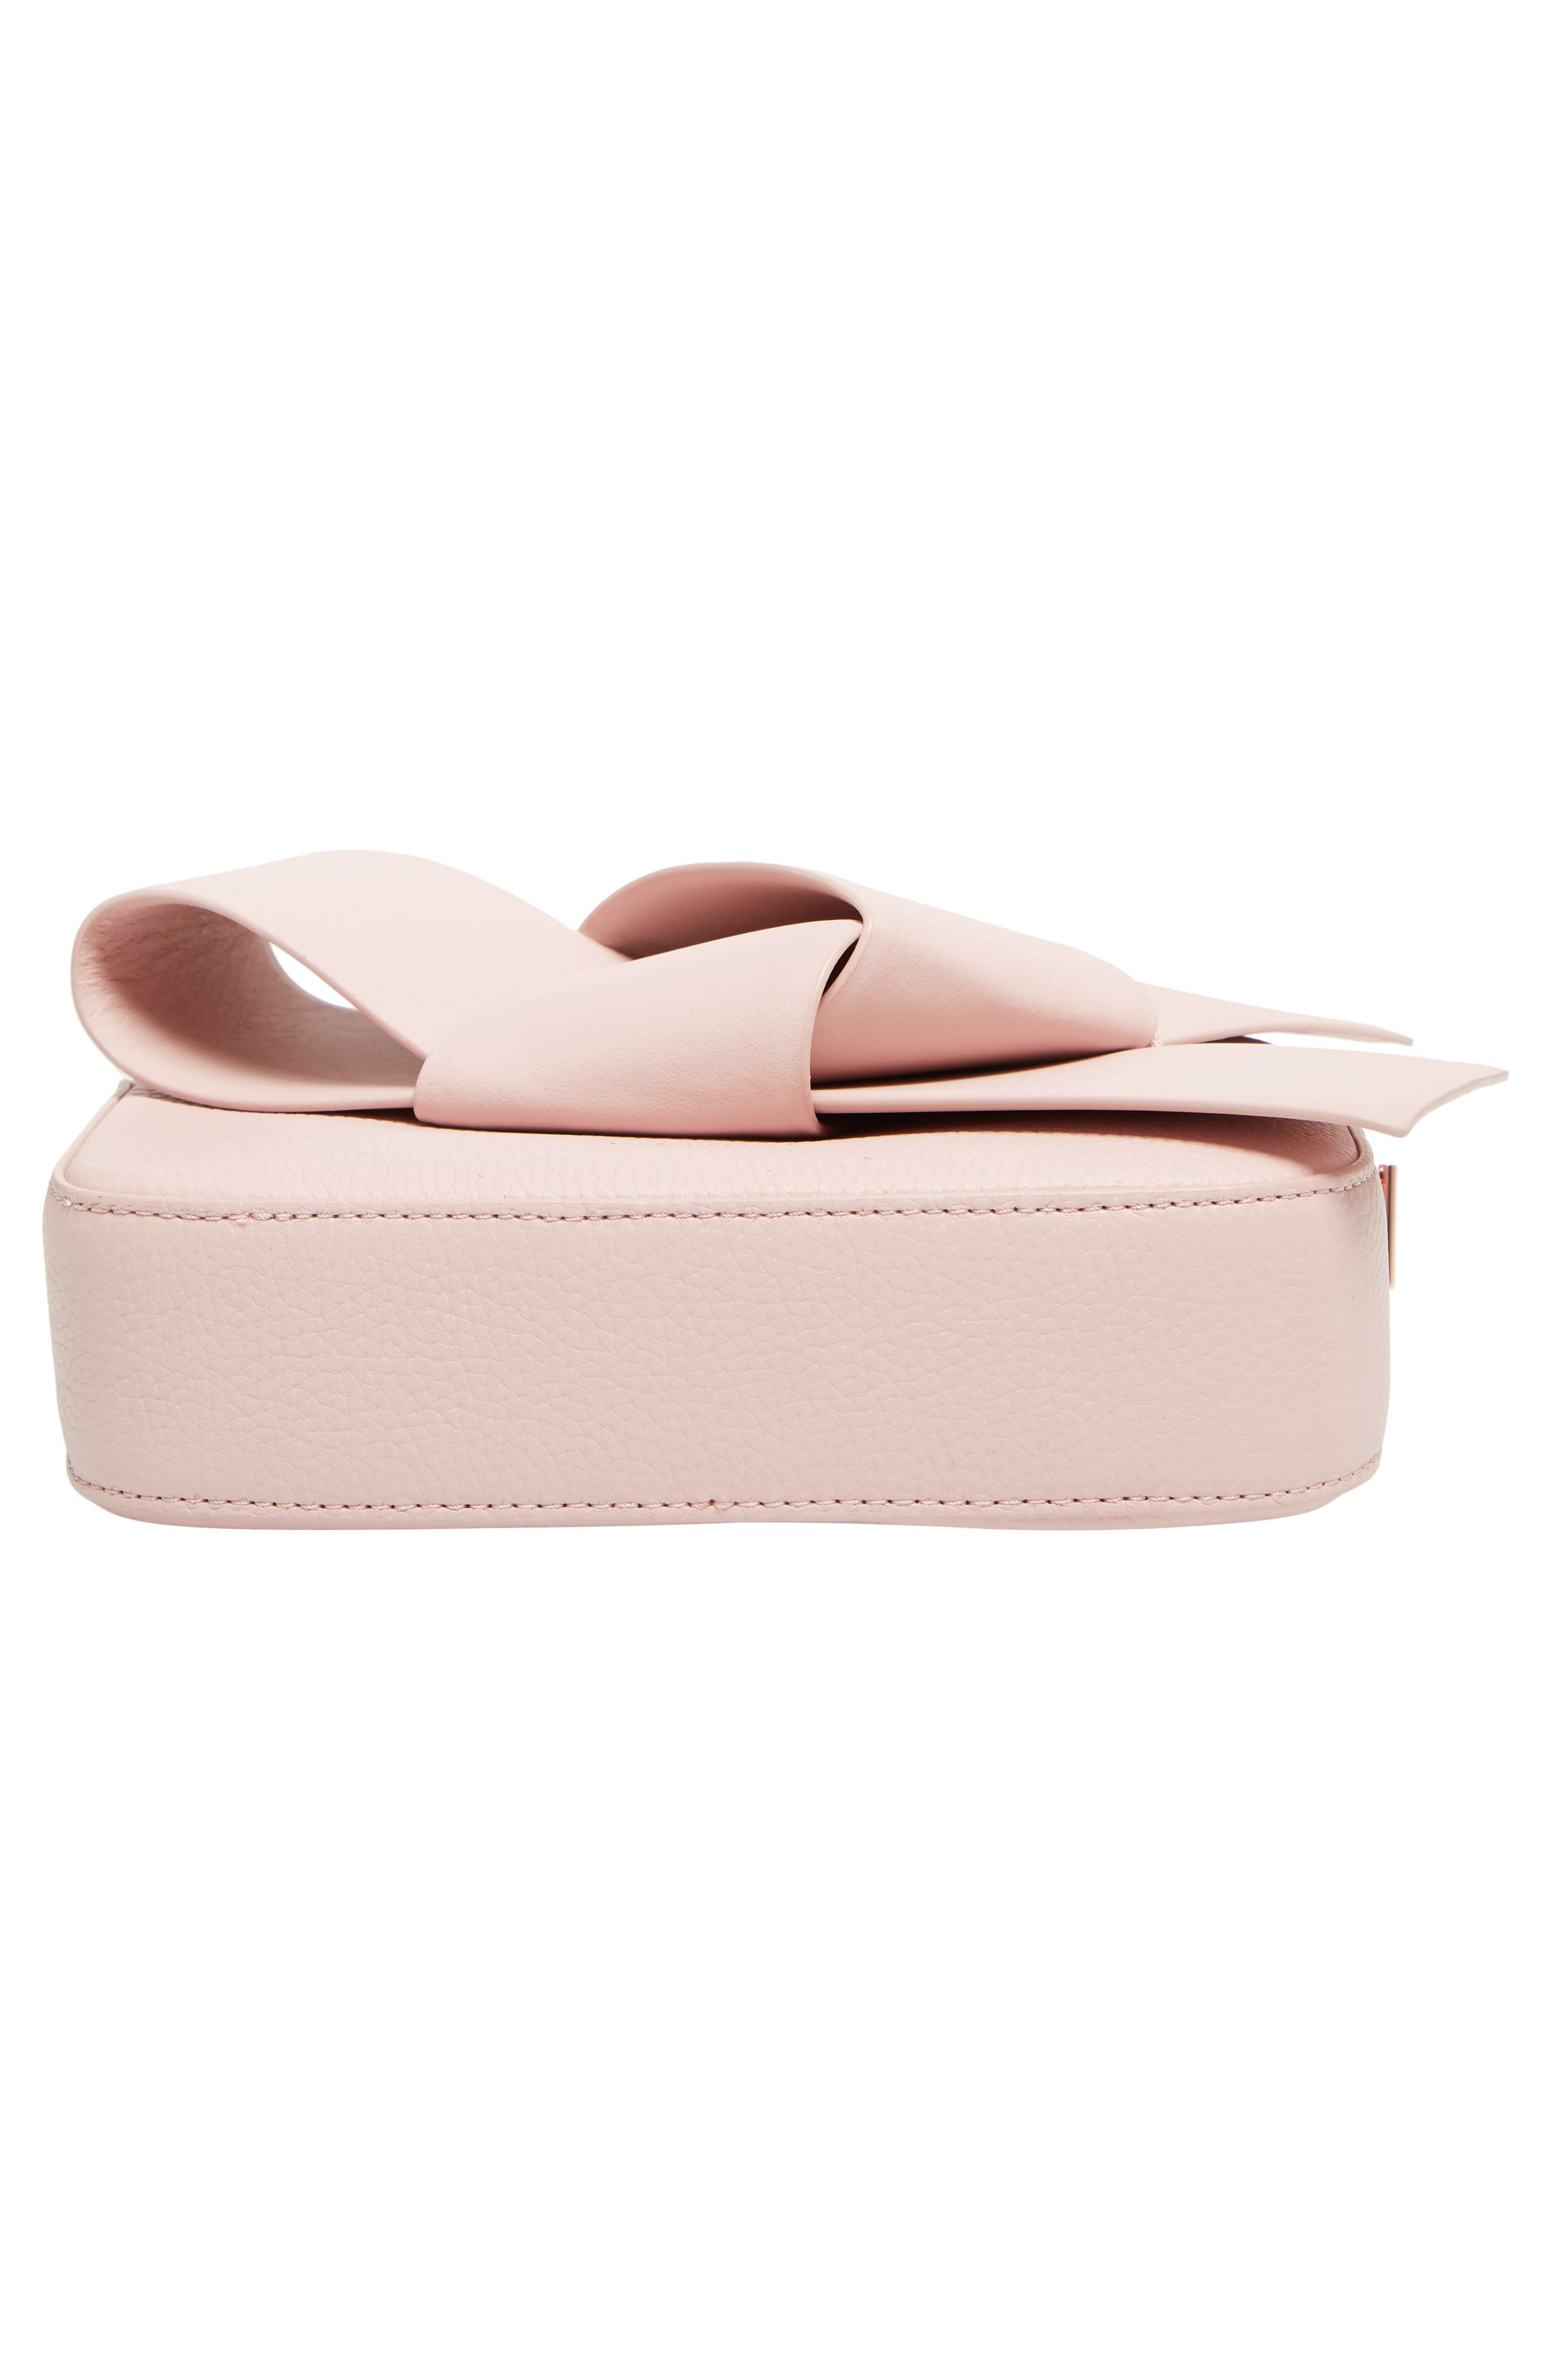 Giant Knot Leather Camera Bag,                             Alternate thumbnail 6, color,                             Nude Pink